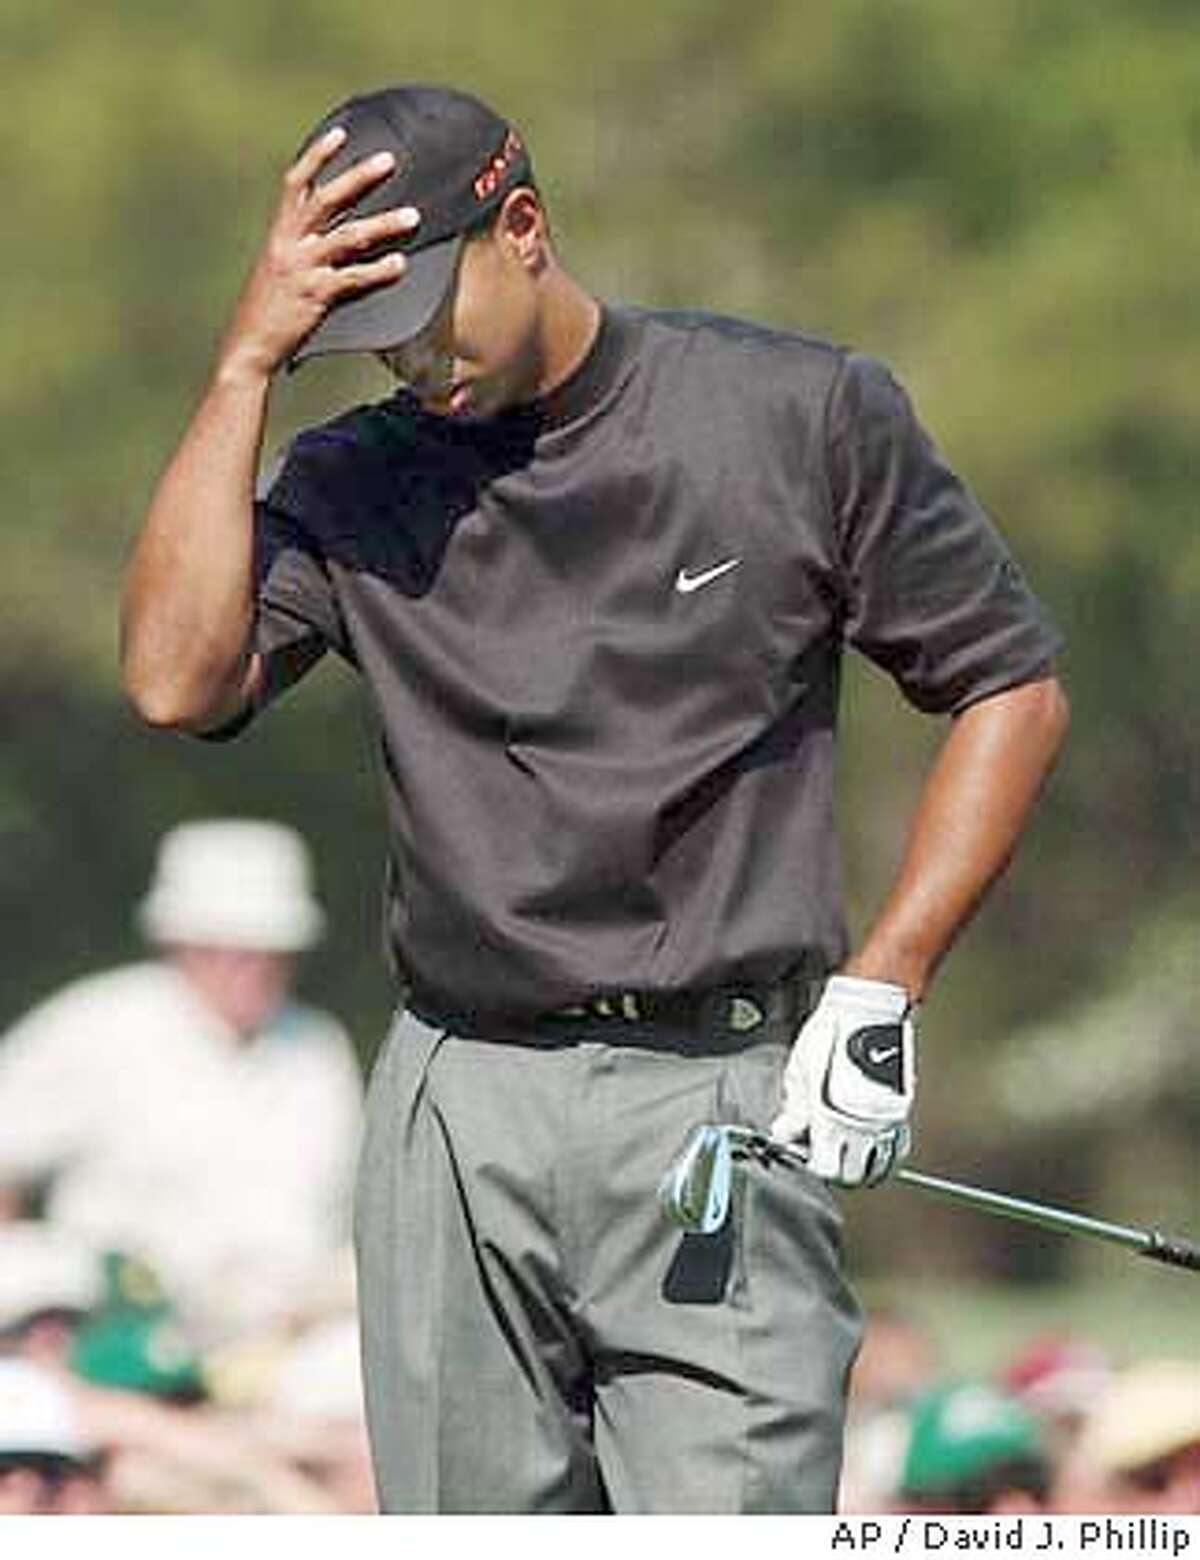 Tiger Woods reacts after hitting on the 11th fairway during the third round of the golf tournament at the Augusta National Golf Club in Augusta, Ga., Saturday, April 10, 2004. (AP Photo/David J. Phillip)